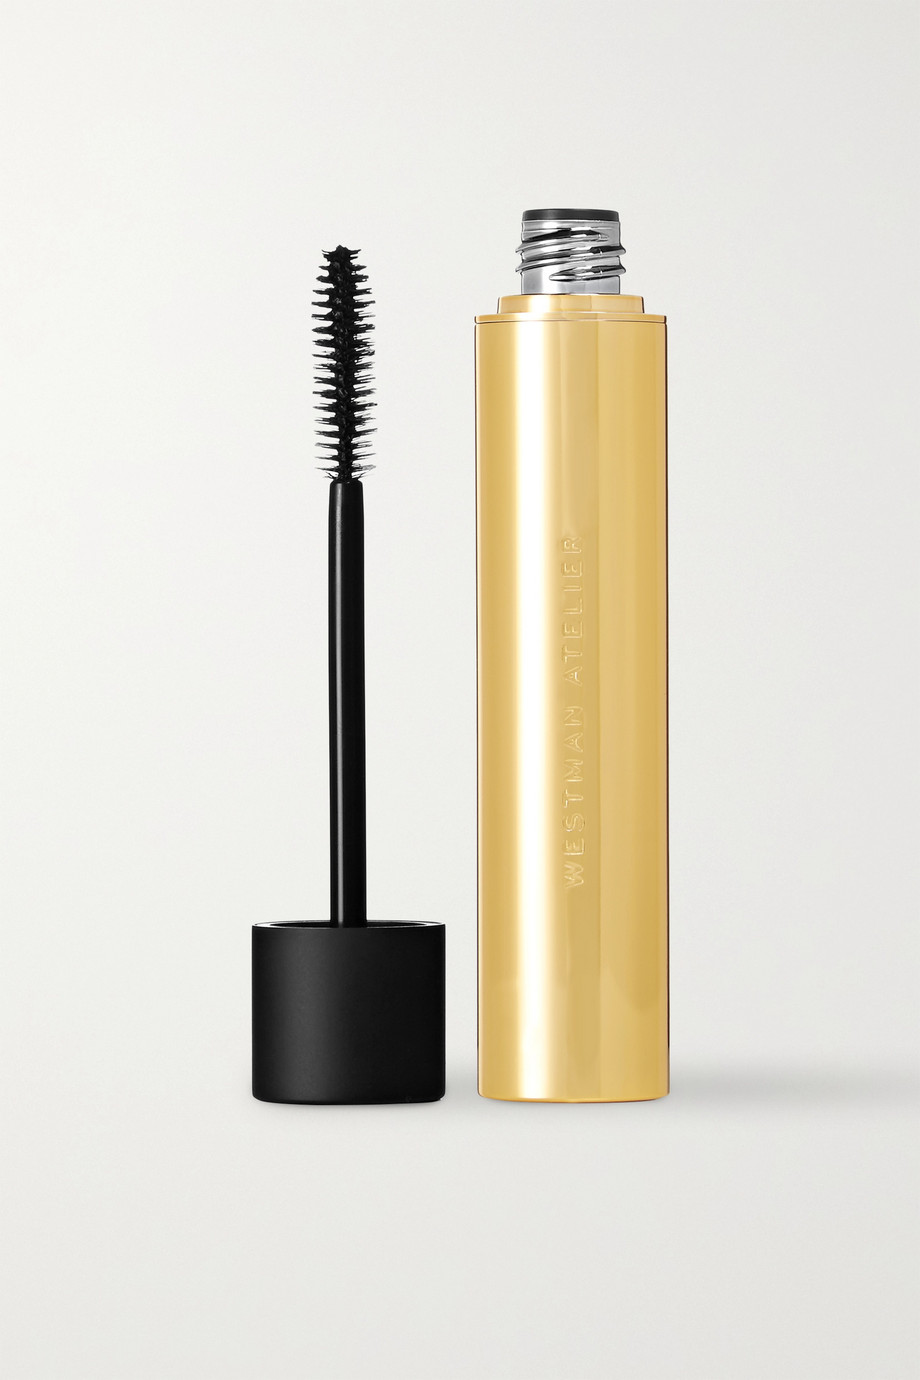 Westman Atelier Eye Love You Mascara - Clean Black